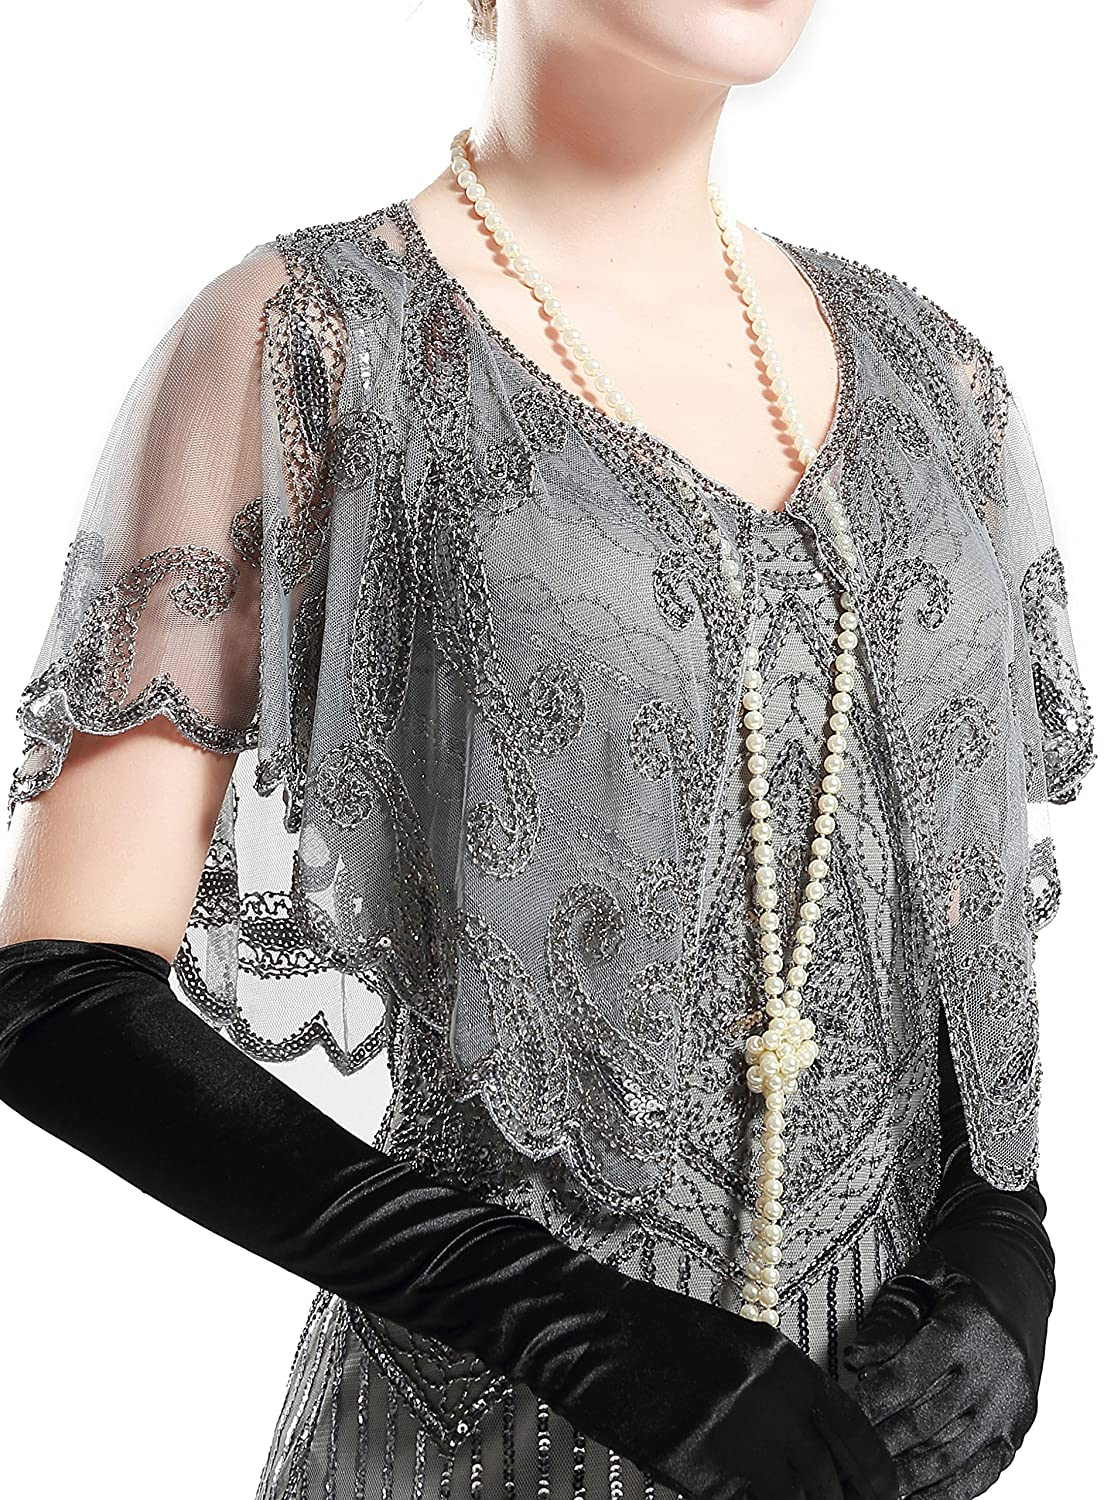 BABEYOND 1920s Shawl Wraps Sequin Beaded Evening Cape Bridal Shawl Bolero Flapper Cover Up (Gray) CA-US-vintageshawl